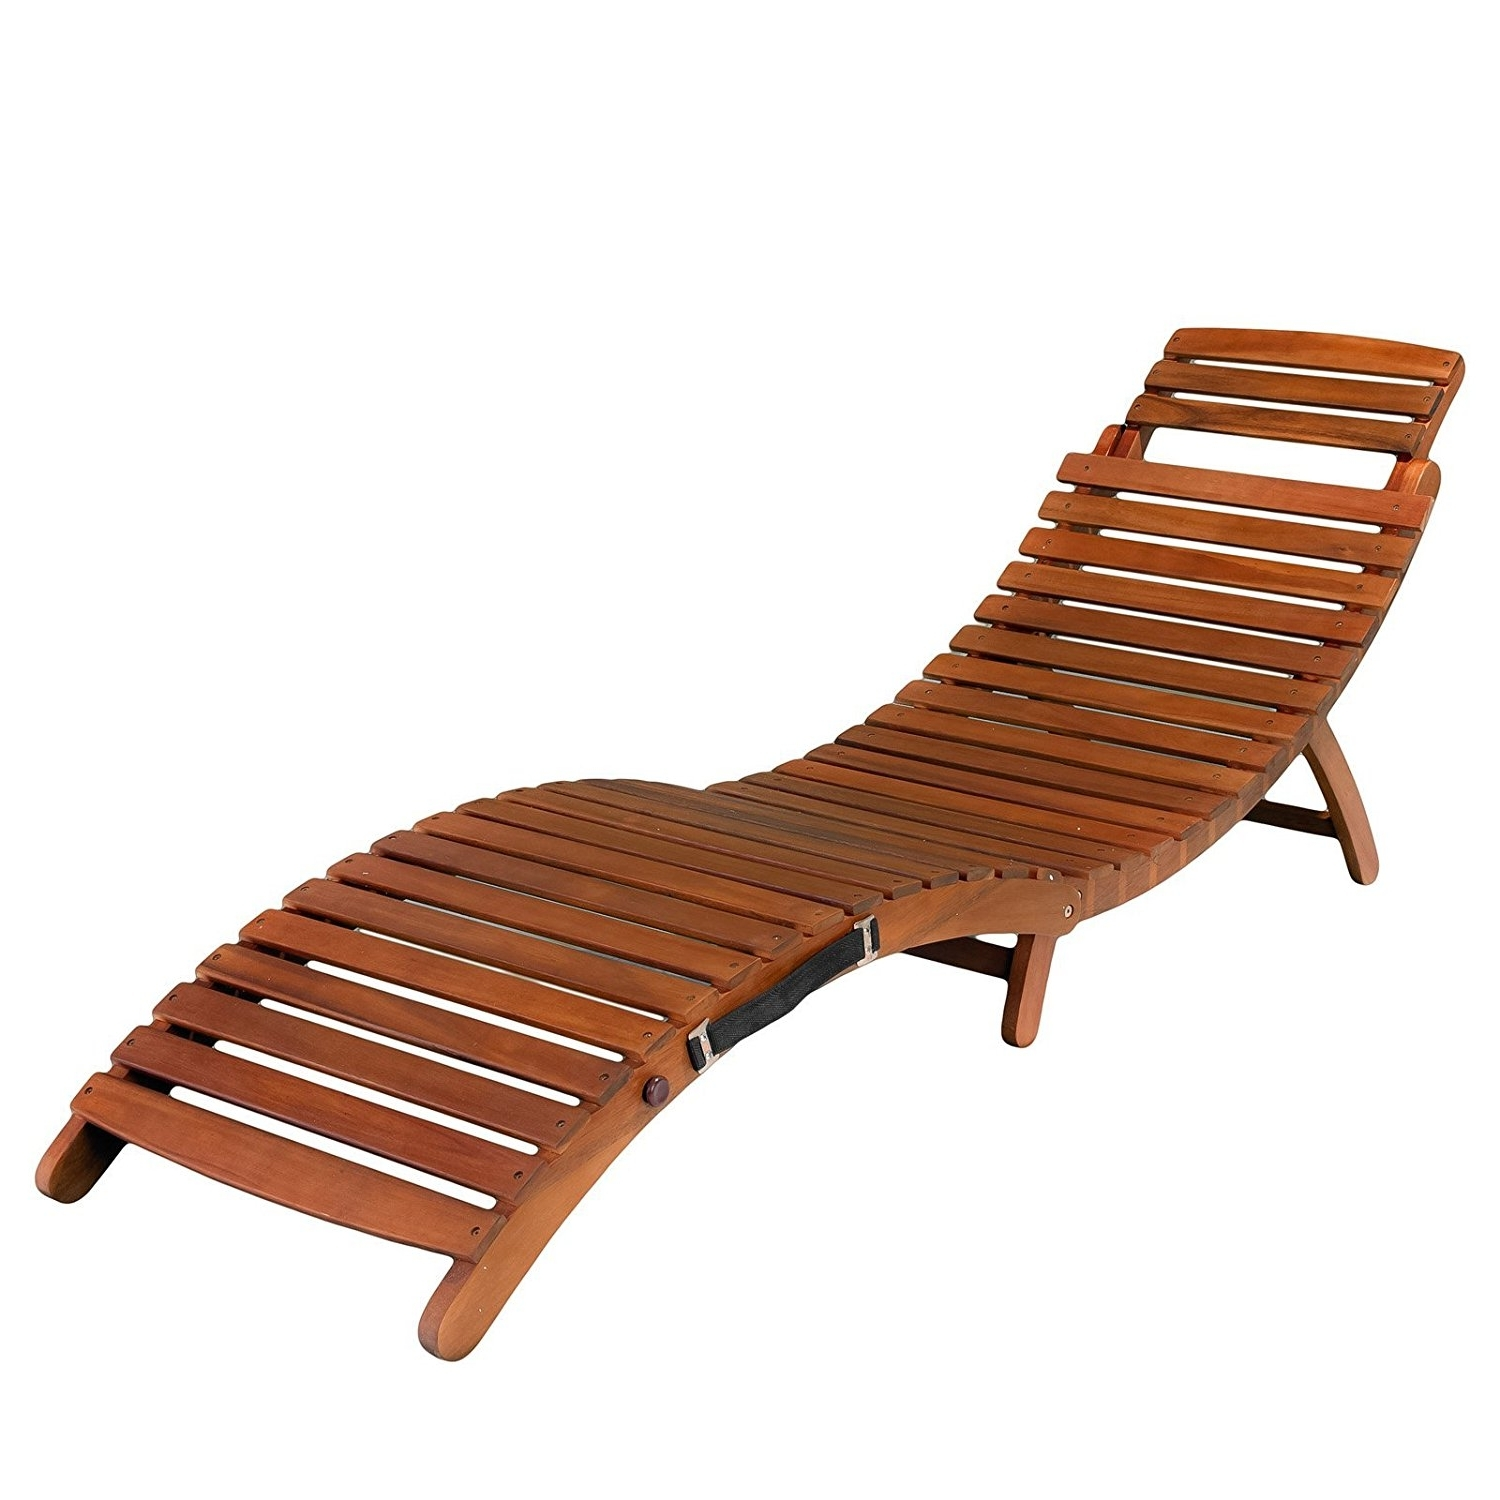 Current Outdoor Folding Chaise Lounges Intended For Amazon: Lahaina Outdoor Chaise Lounge: Garden & Outdoor (View 2 of 15)